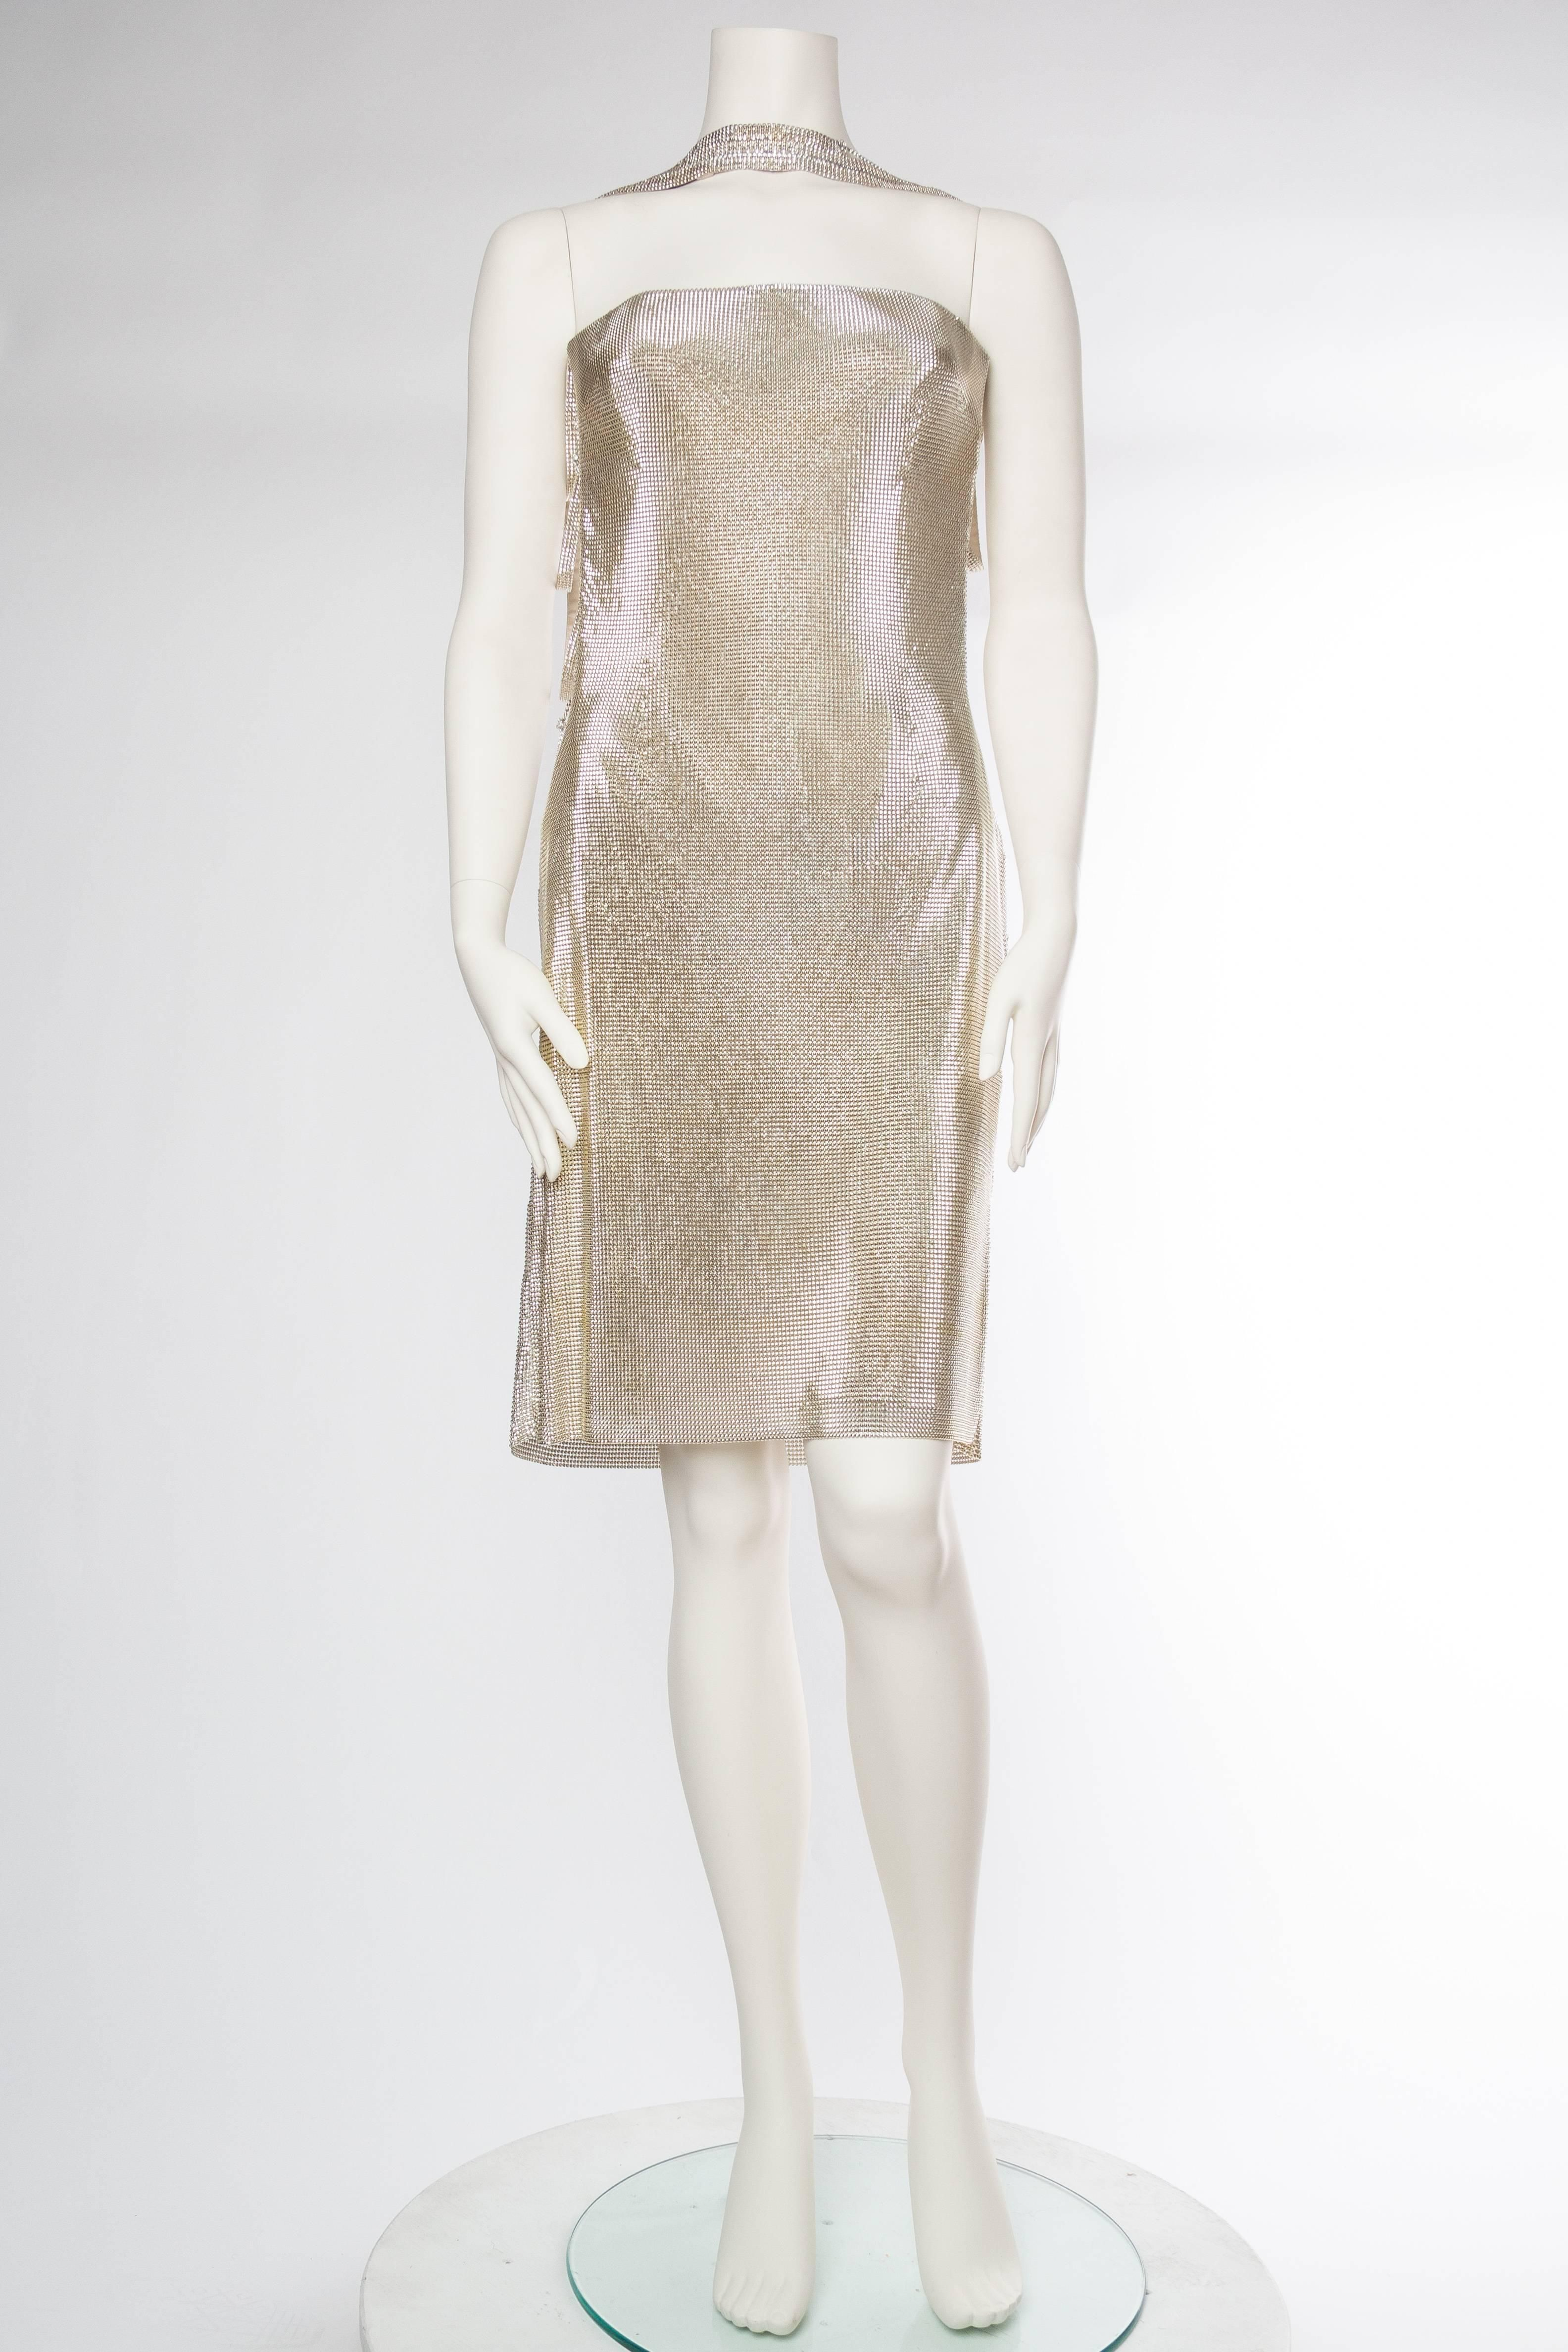 c0e1b0842b5 Gianni Versace Couture Metal Mesh Backless Dress with Crystals NWT For Sale  at 1stdibs